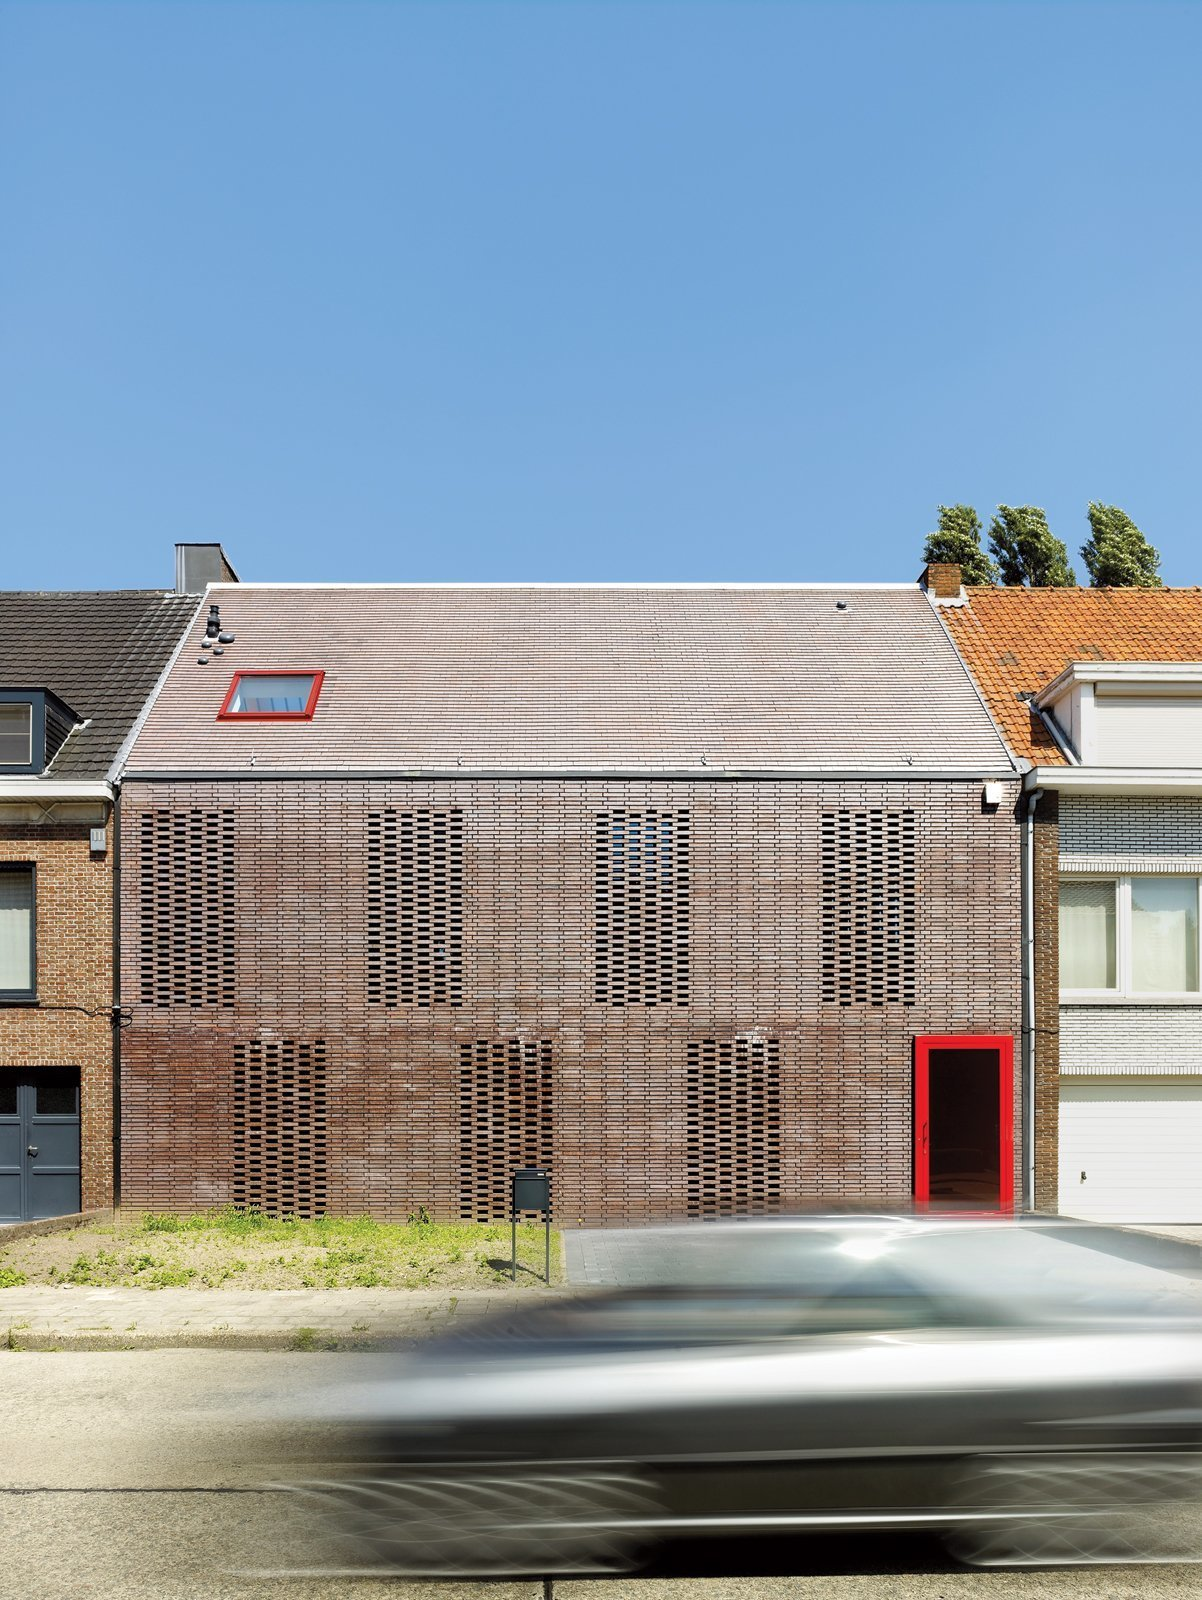 """Exterior, Brick Siding Material, House Building Type, and Shingles Roof Material To provide maxizing privacy and natural light penetration for their clients, Belgium-based DMVA Architects created a frontage composed of """"knitted"""" bricks, which bring light and air into the home.  Best Photos from 9 Best Homes With Interesting Screened Facades"""